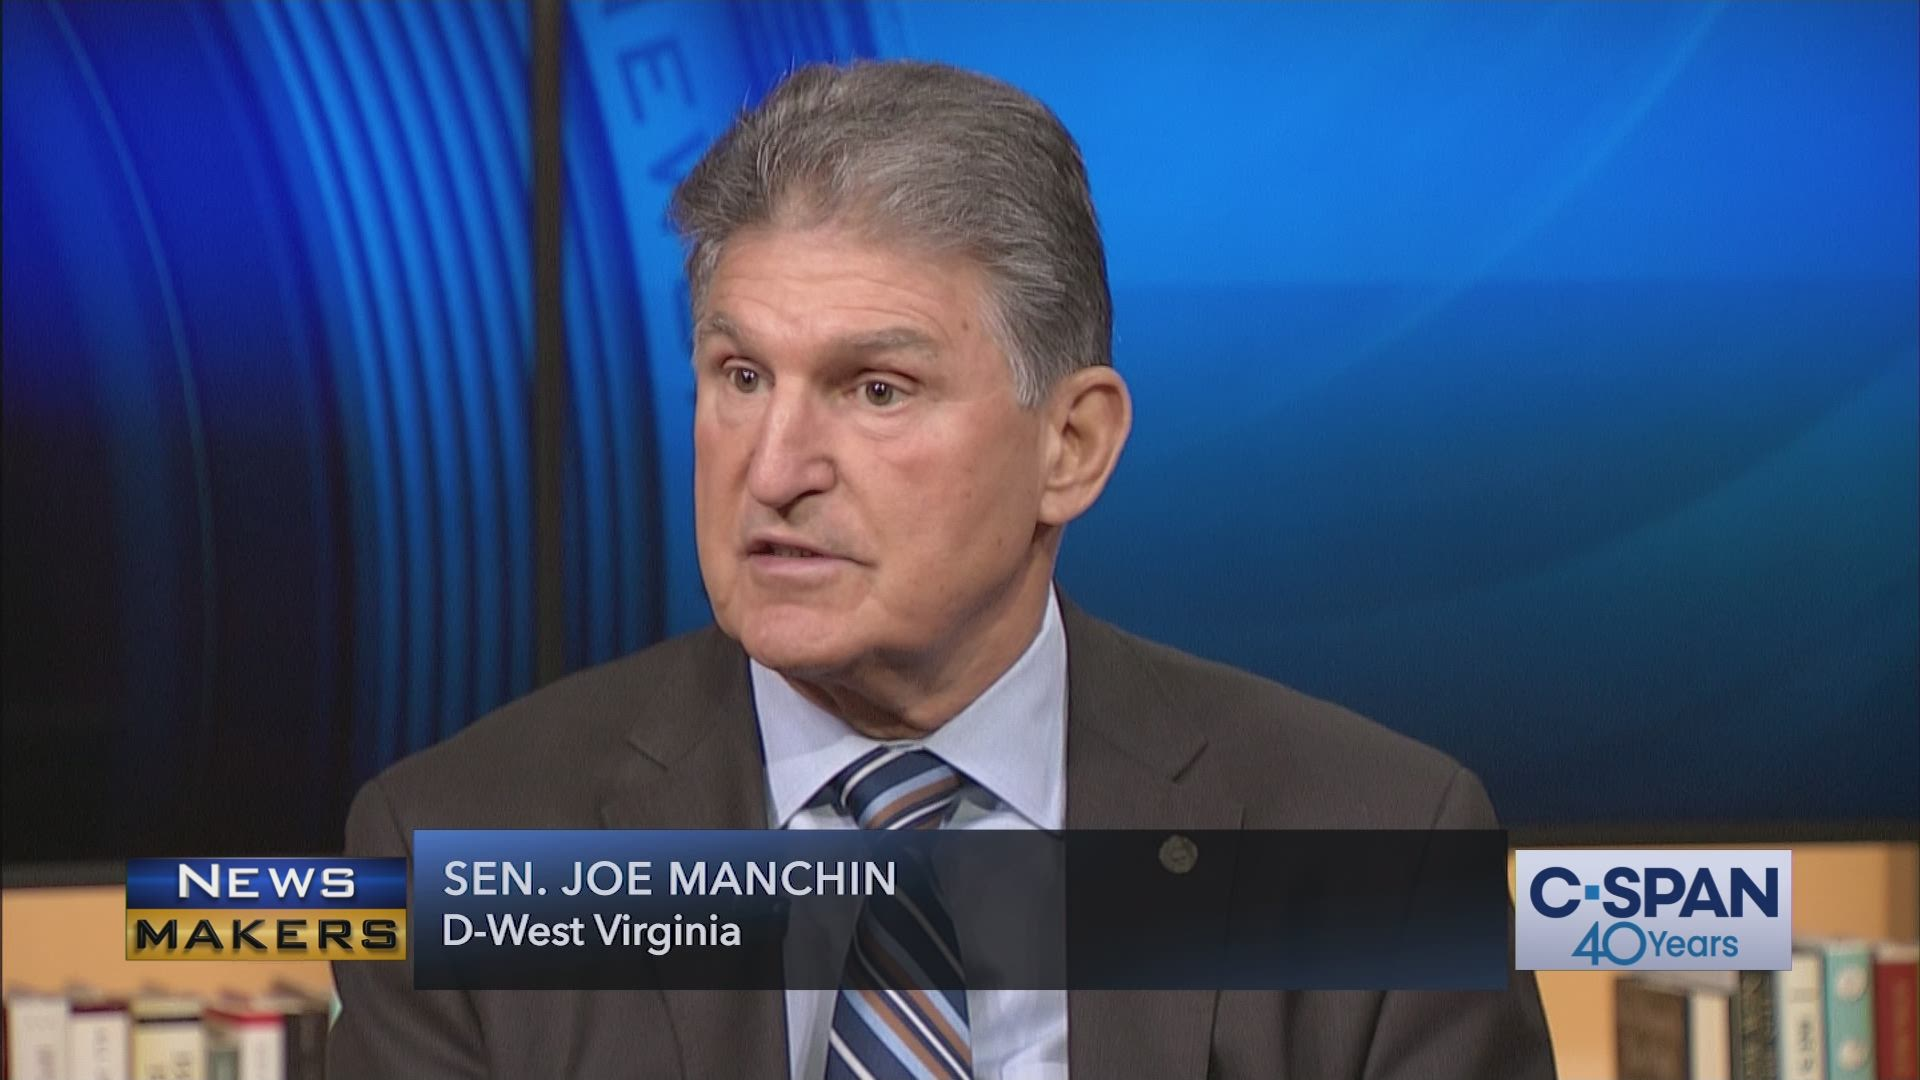 Newsmakers with Senator Joe Manchin | C-SPAN.org